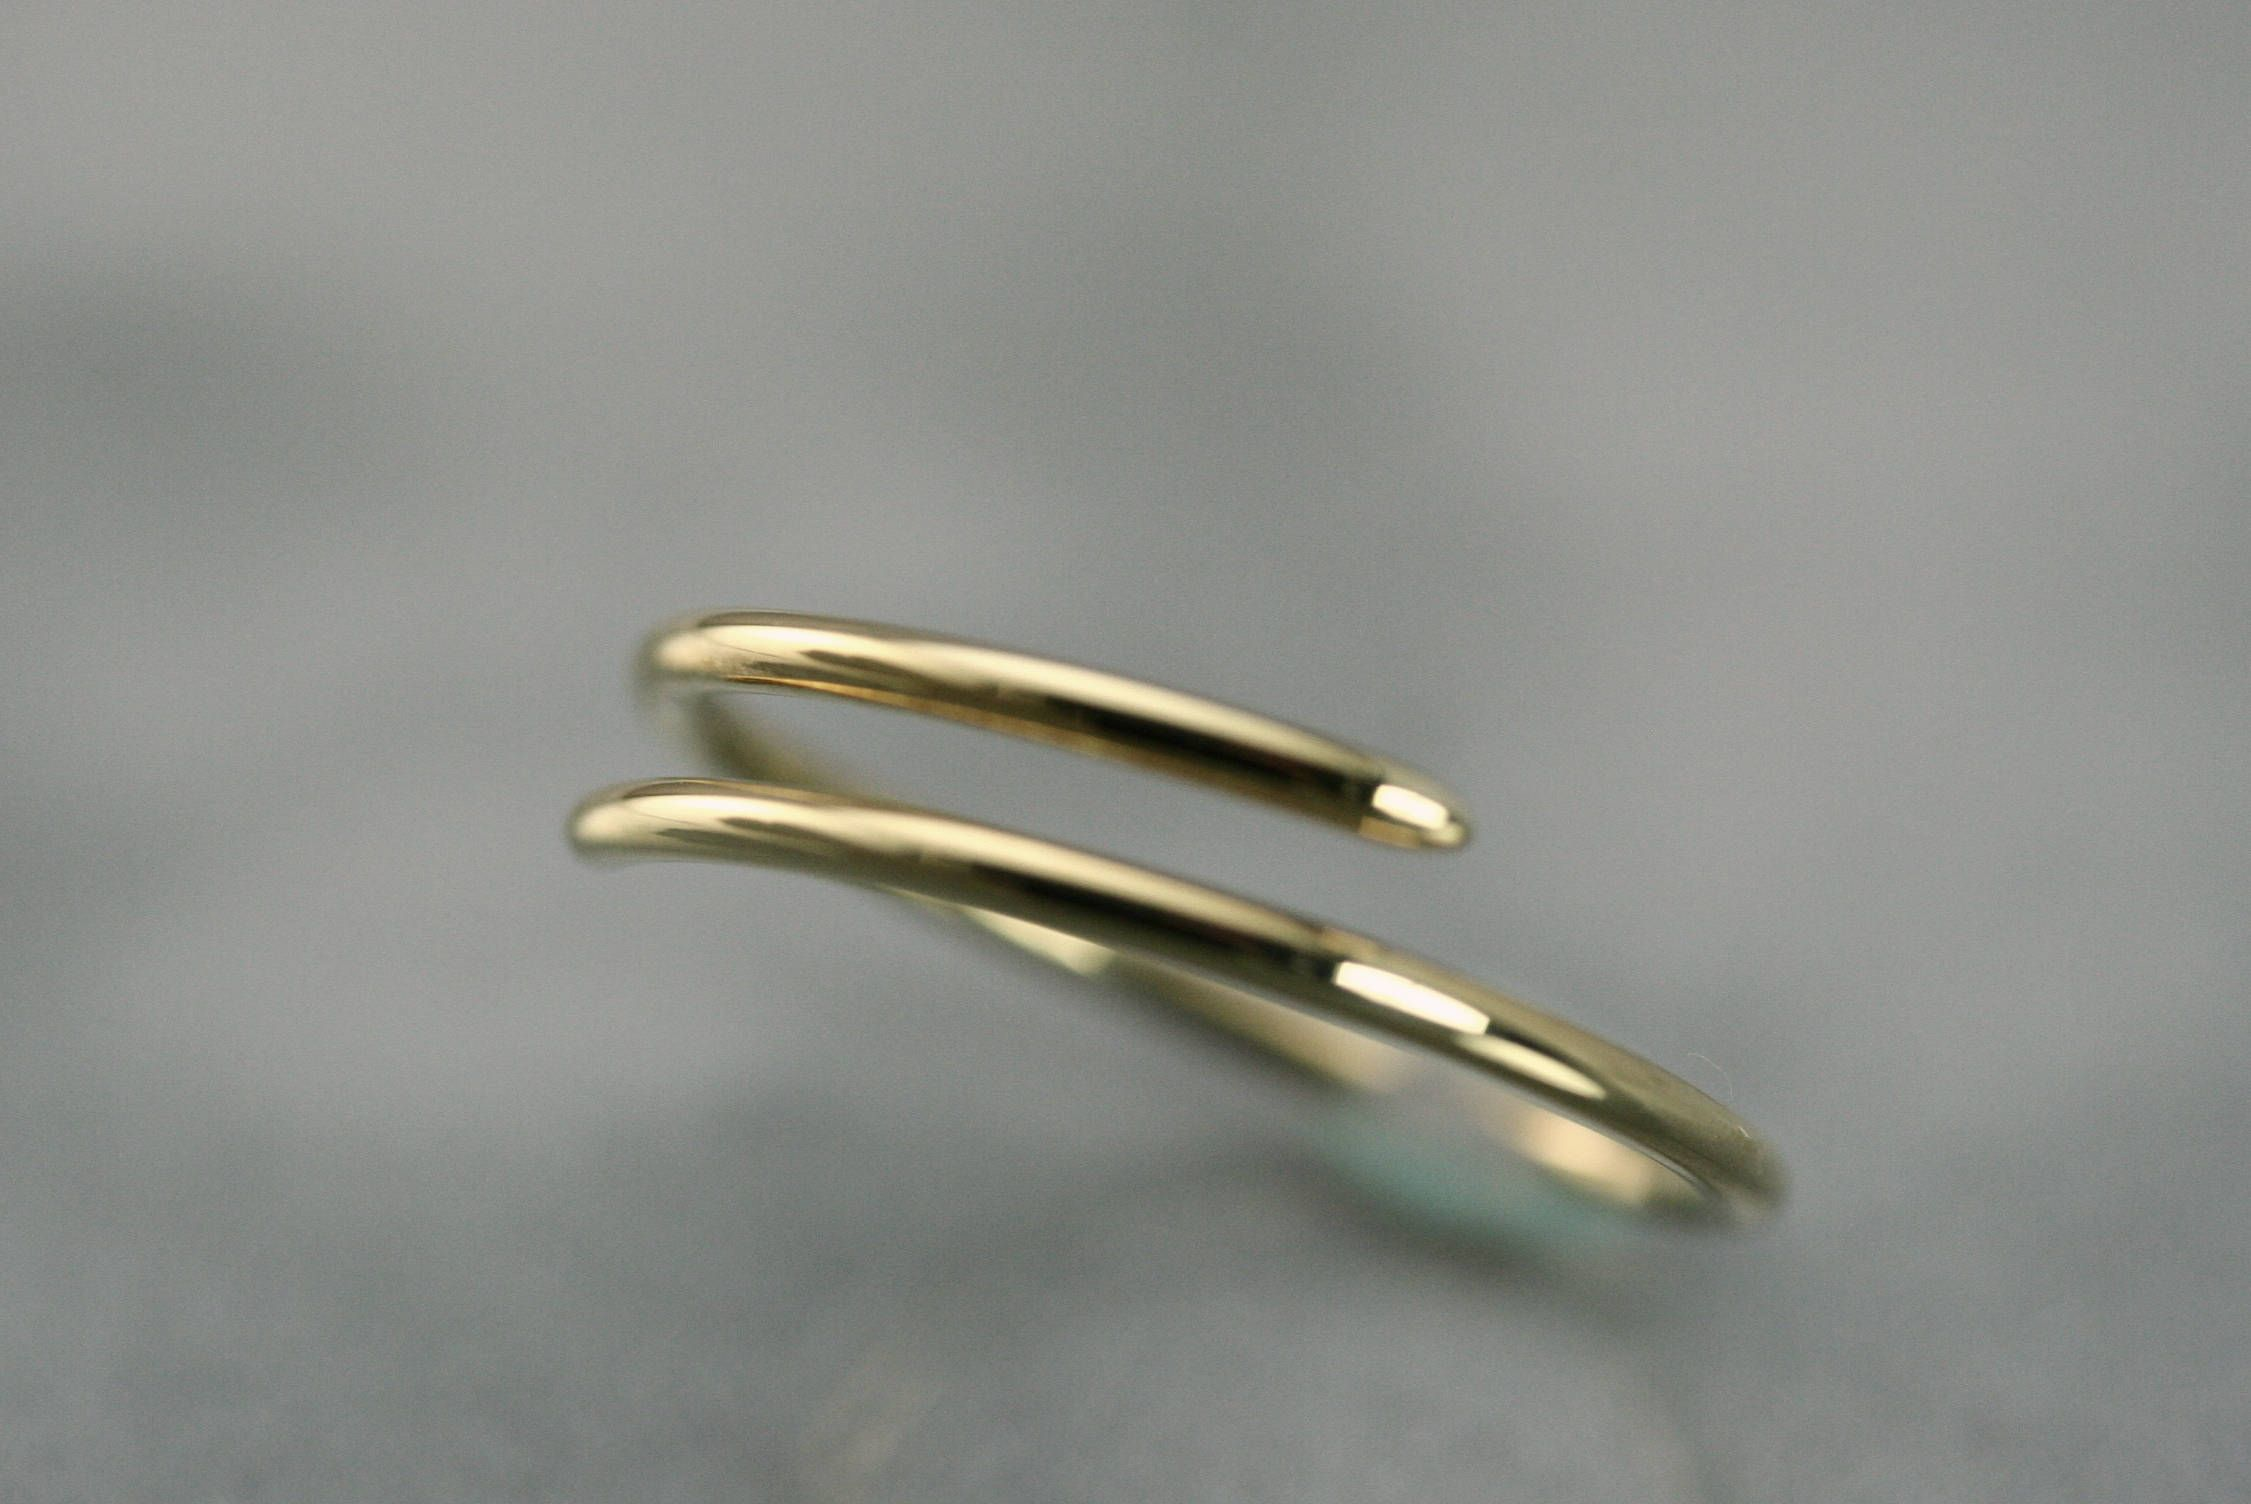 Gold Spiral Ring 10k Or 14k Solid Gold Spiral Ring Gold Adjustable Rings Thumb Rings Rings Gold